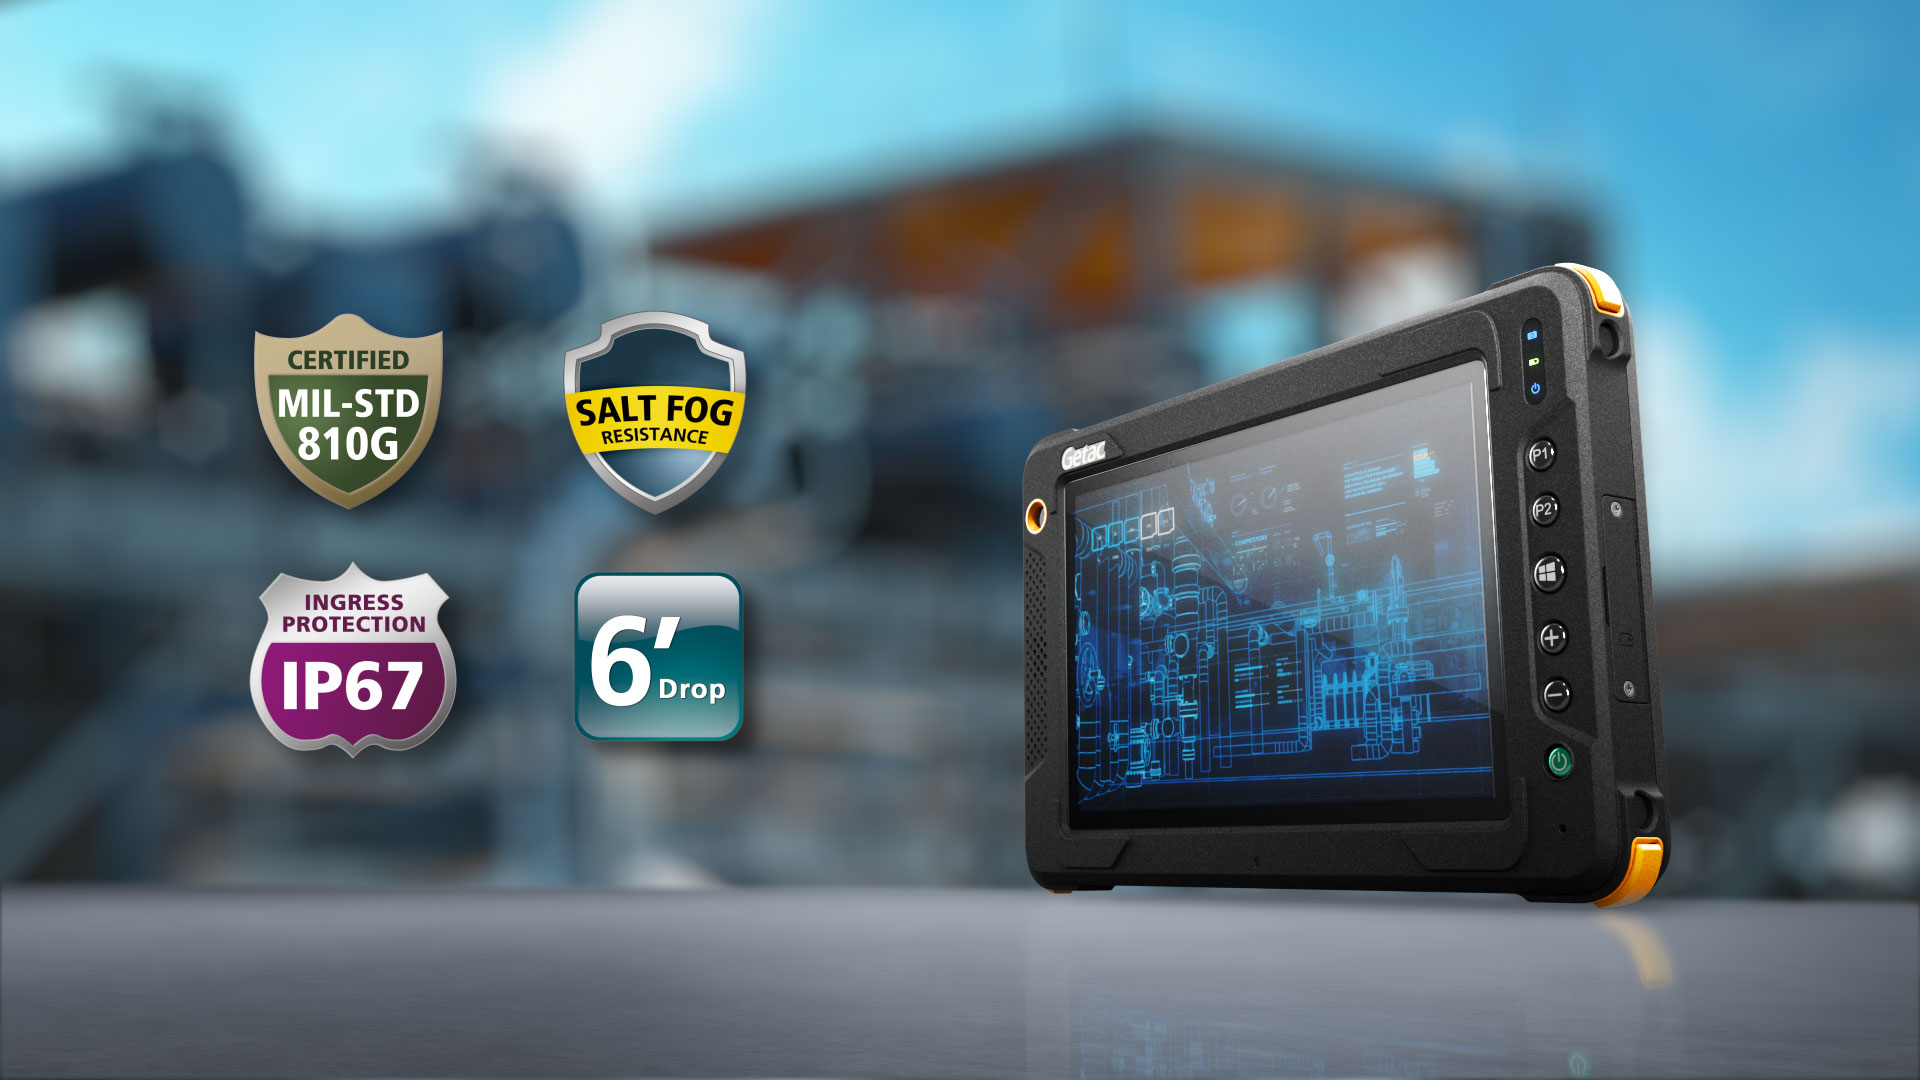 Getac EX80 il tablet Fully Rugged intrinsecamente sicuro